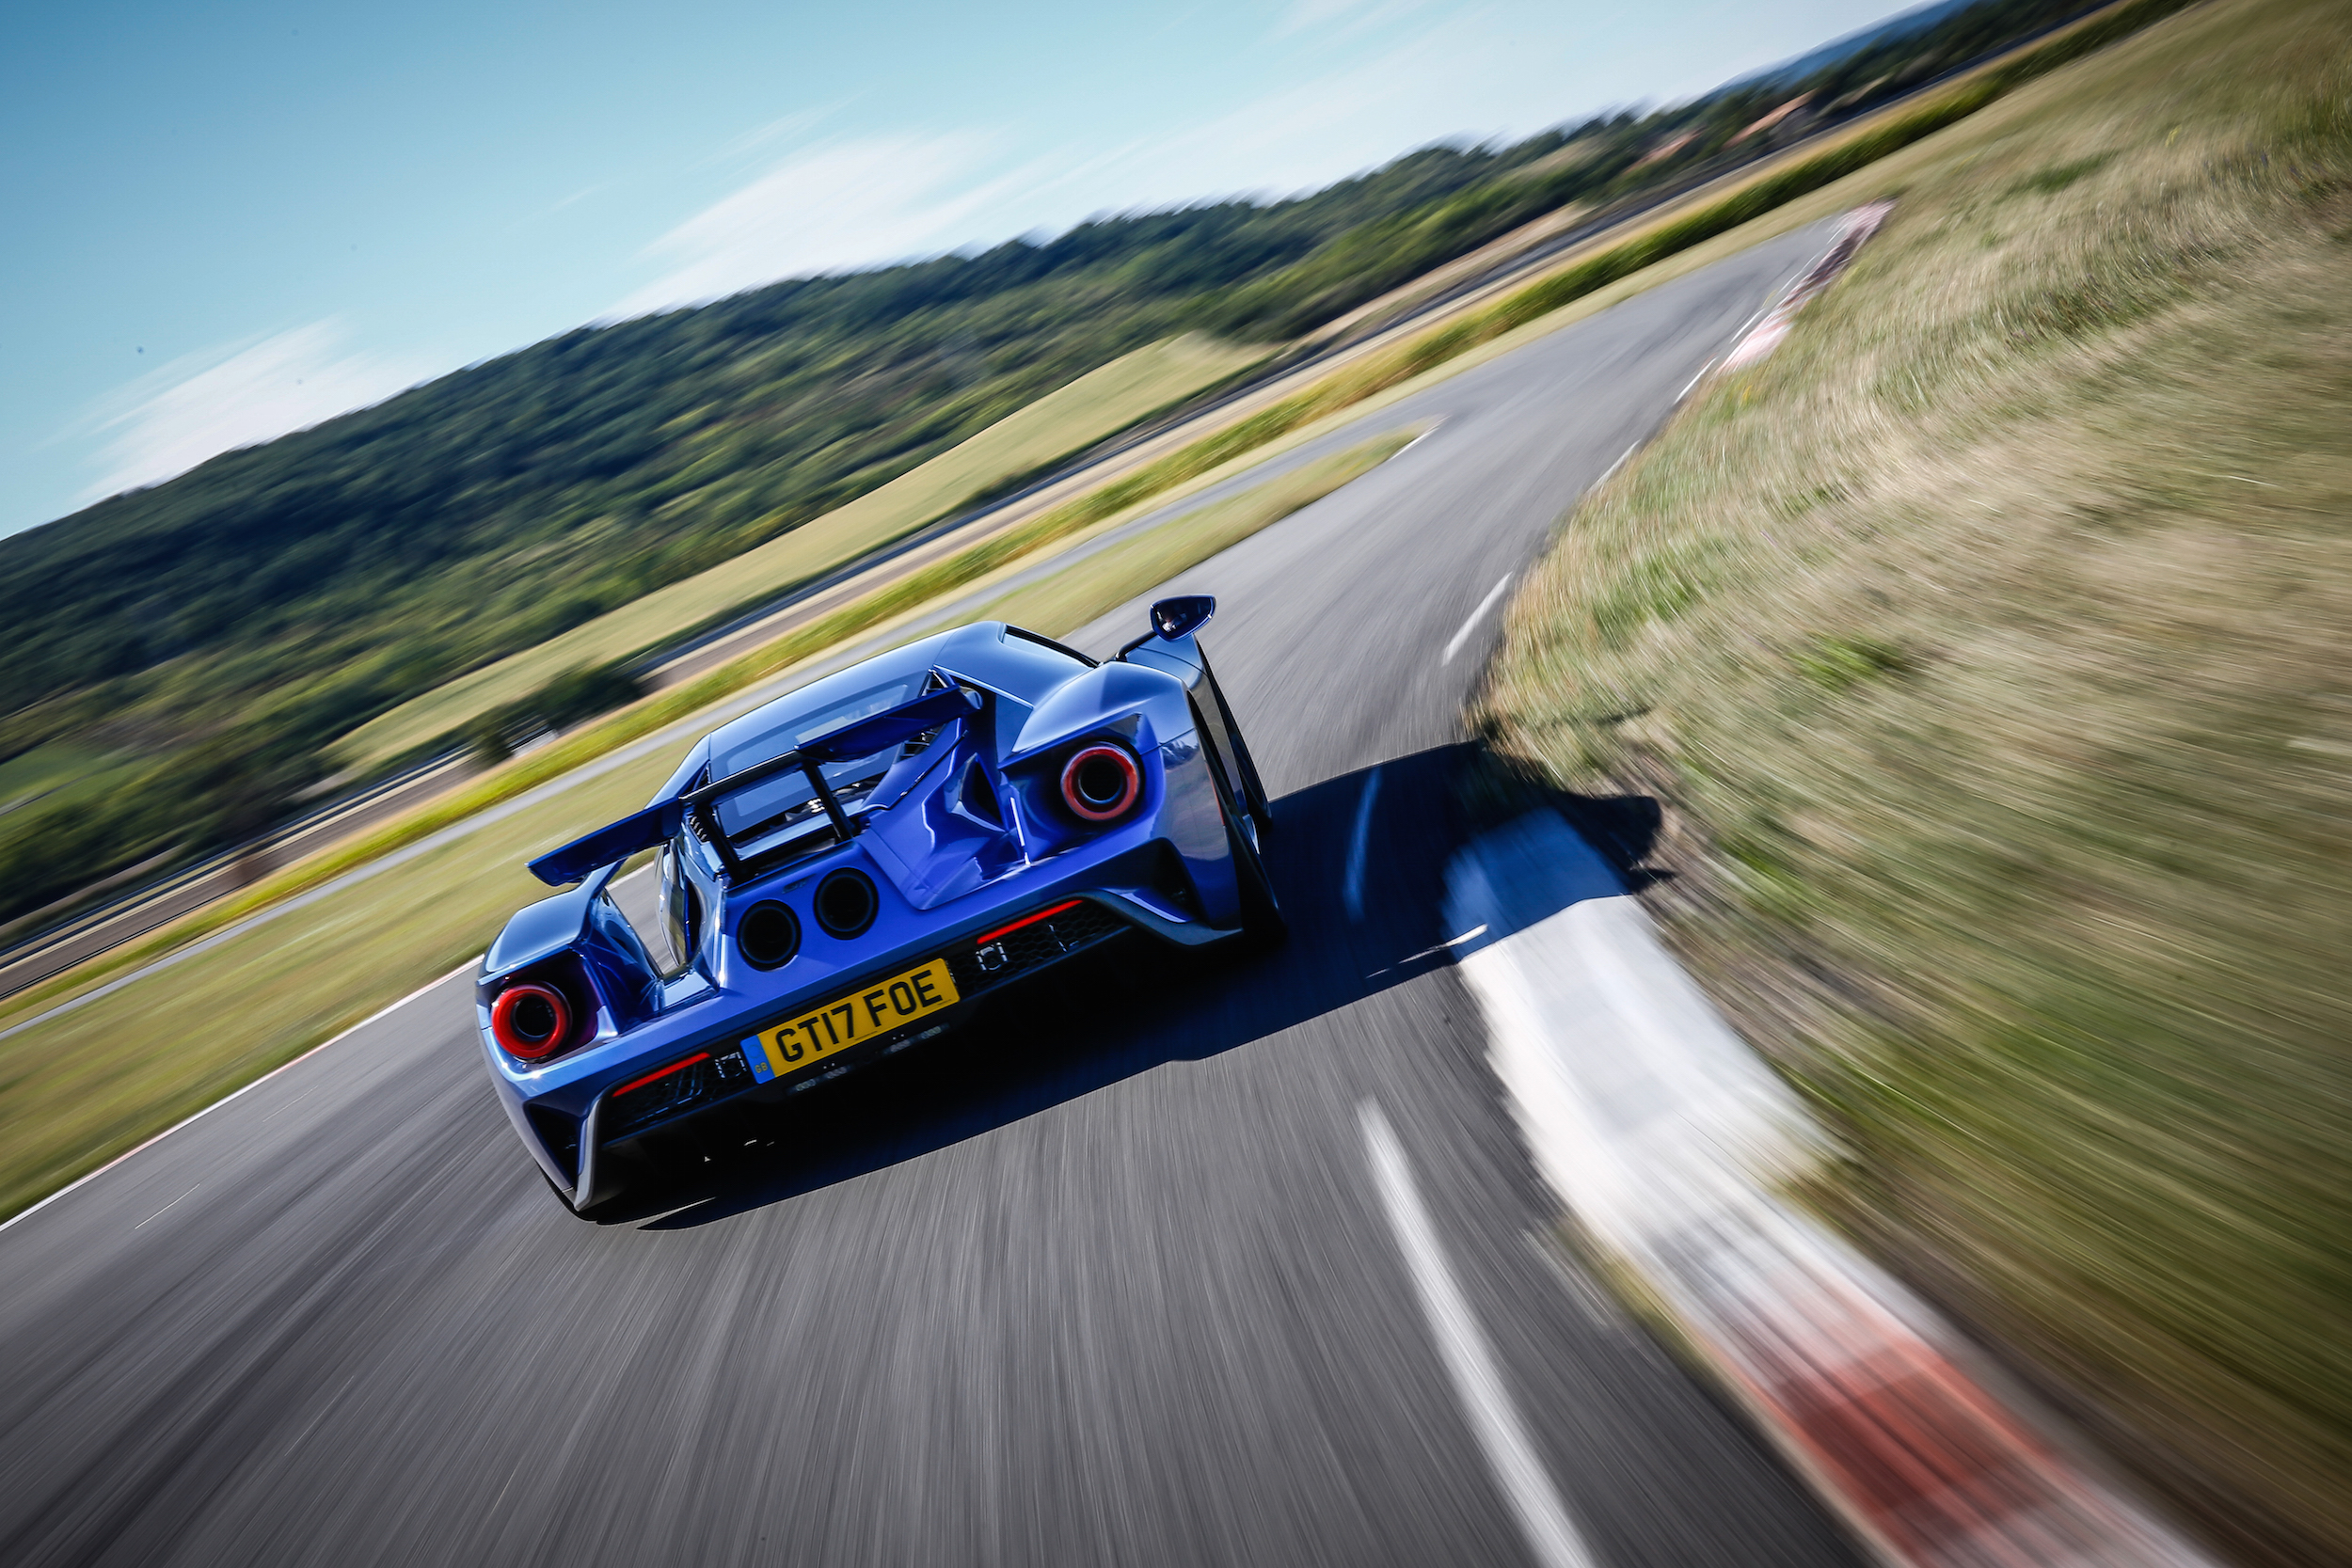 With Ford Gt In Track Mode It Is At Its Most Aggressive Unleashing Full Power From The Engine Via The Most Sensitive Throttle Response And Immediate Gear